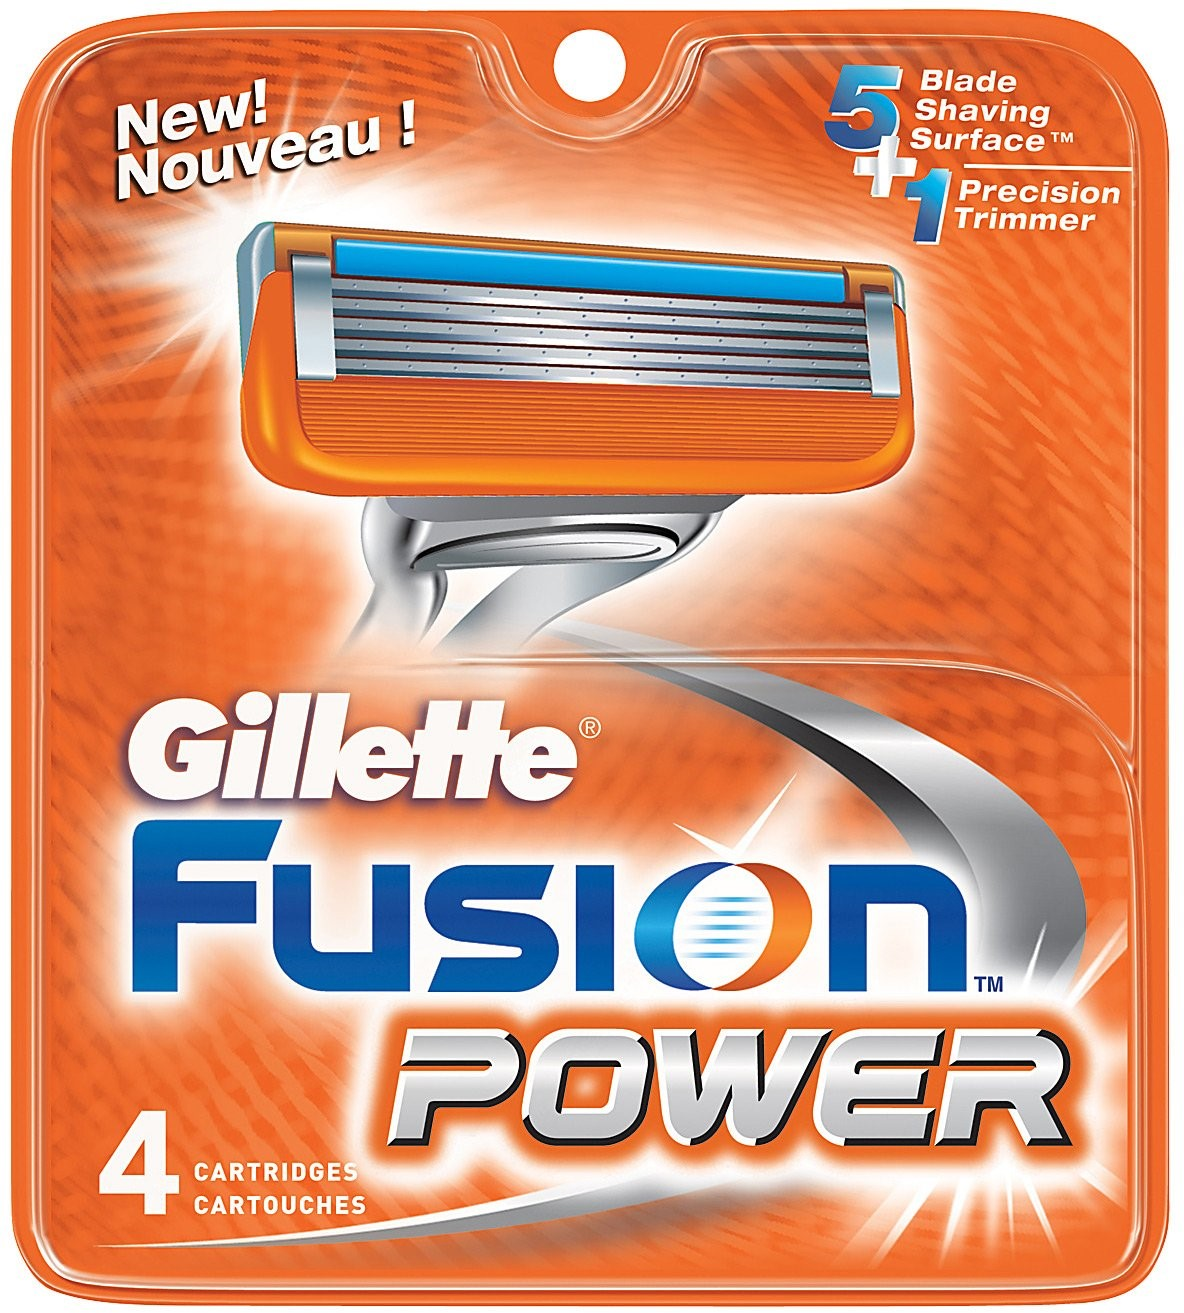 Gillette Fusion Power Cartridges 4 Each (Pack of 6)